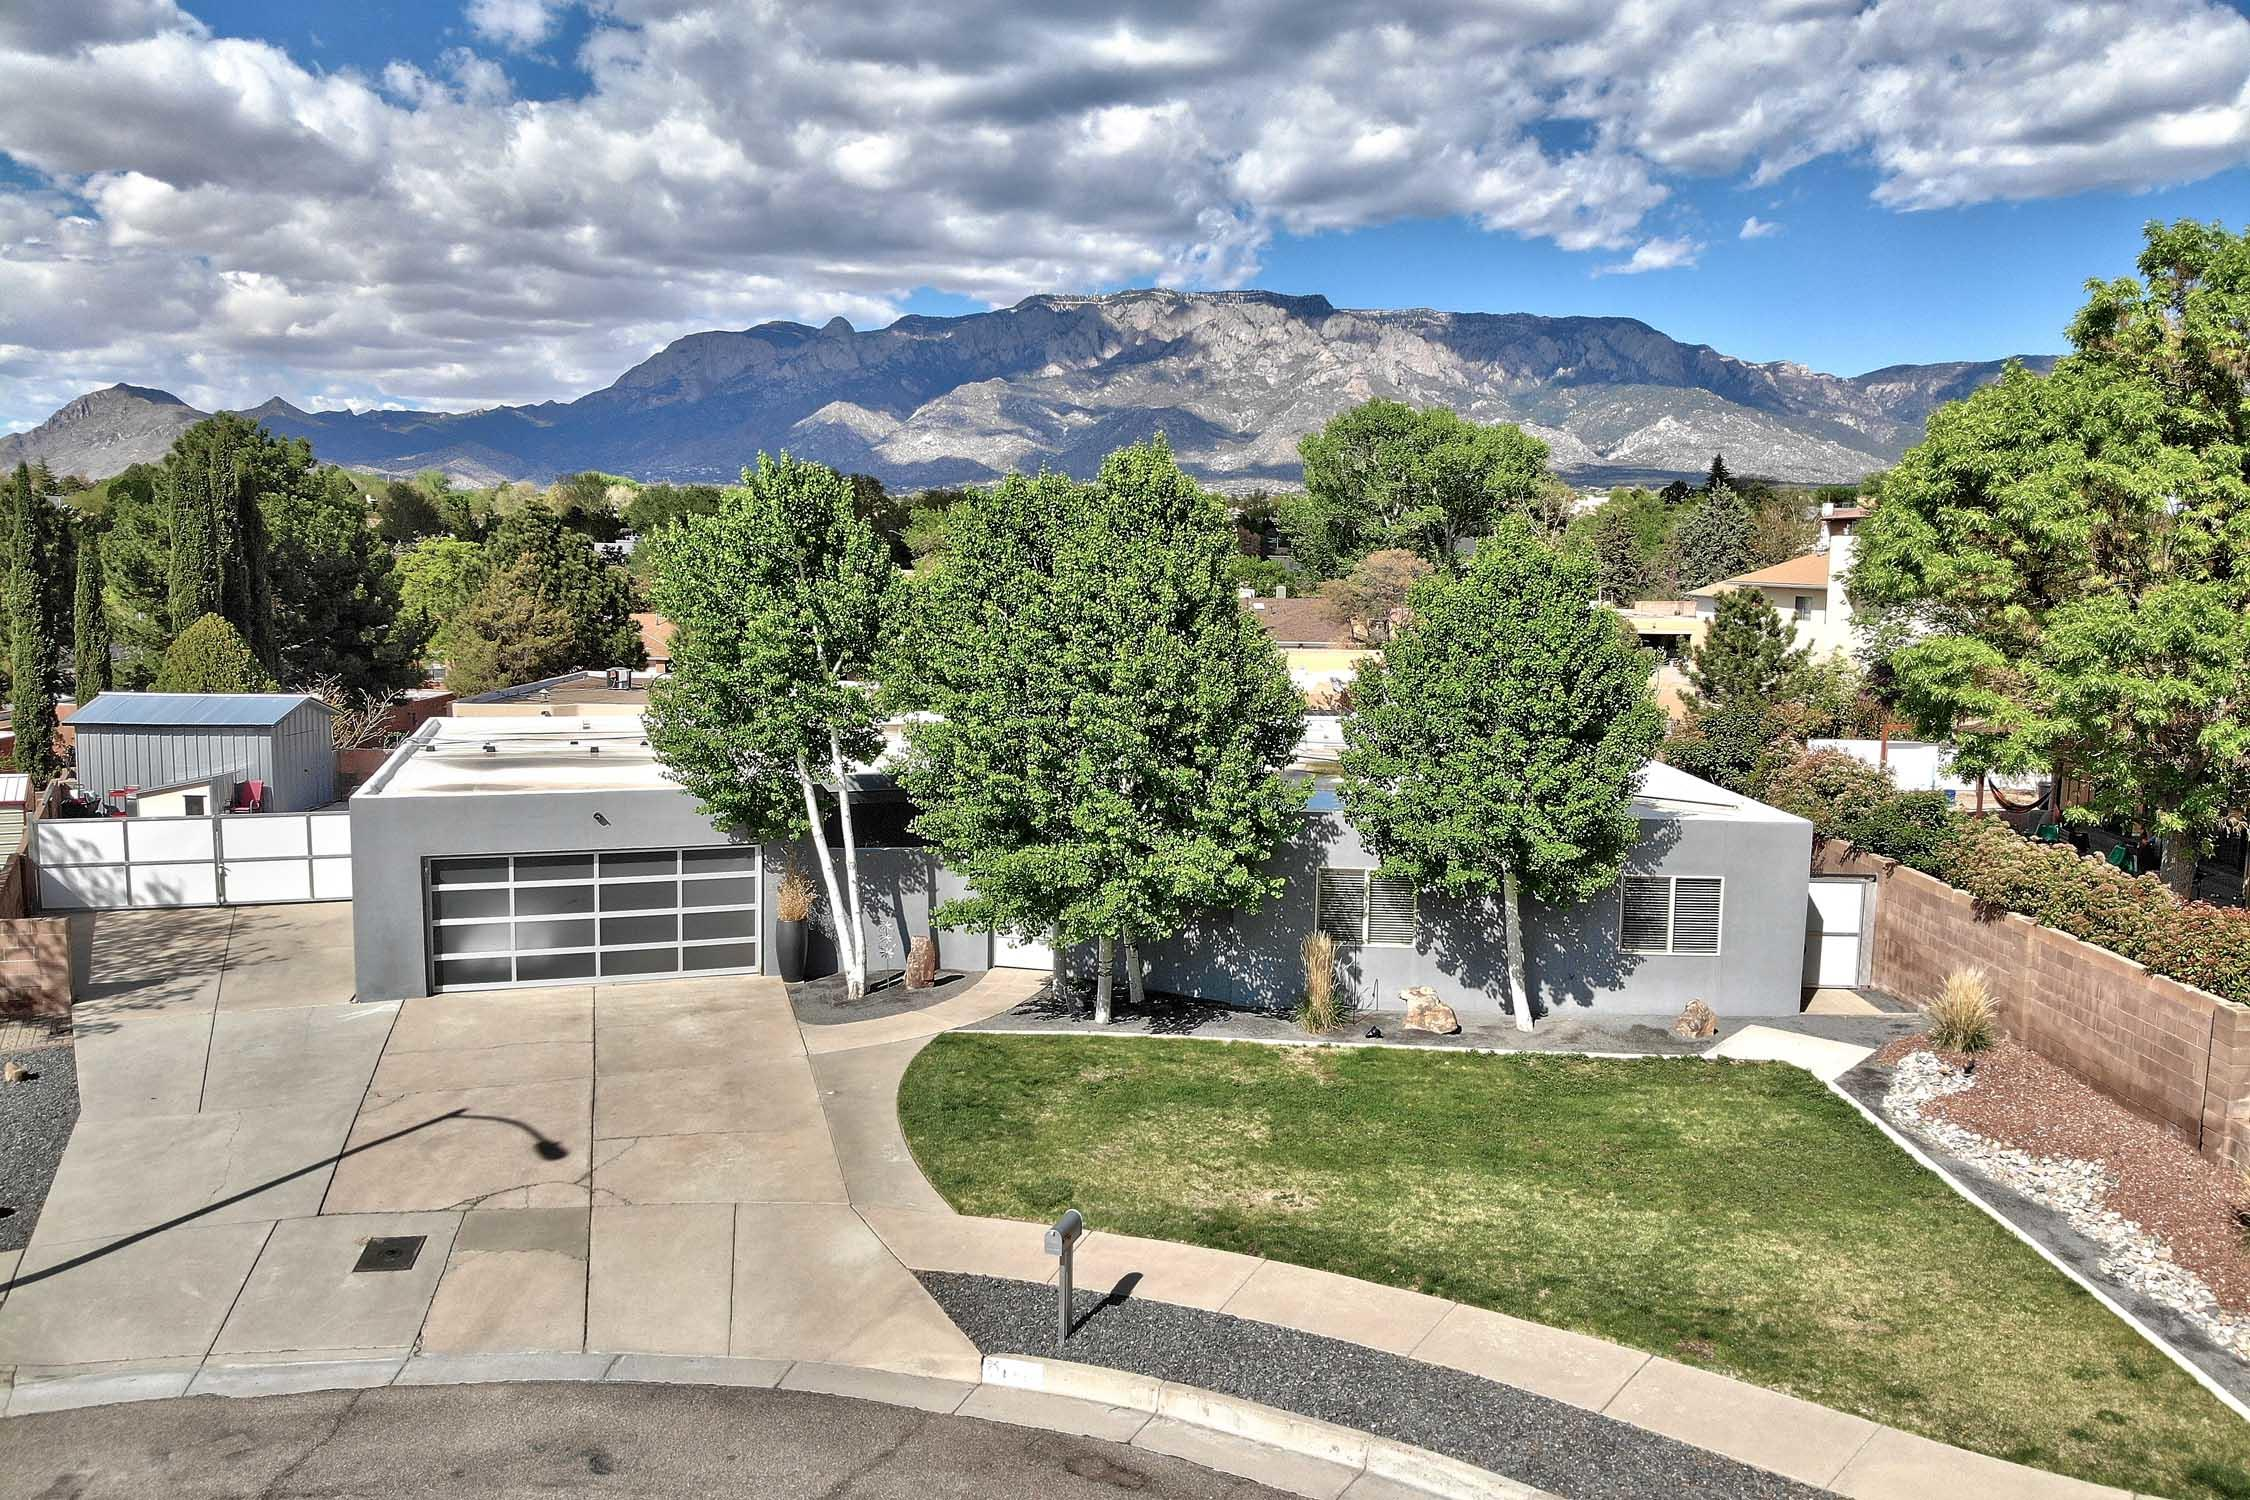 Recently remodeled home located in the highly sought-after Academy Hills neighborhood. A beautiful, private courtyard welcomes you into a modern home full of natural sunlight. The updates that were made to this home were tastefully done throughout and executed to perfection. The tile flooring is complemented nicely by the smooth textured walls & ceilings, plus new wall plates, sockets and switches provide a clean, modern look. The kitchen is open to the dining room, and the two living areas, and is loaded with modern conveniences that are sure to make cooking in it a joy. A stainless steel refrigerator and electric range are surrounded by plenty of cabinets. Plus, there is a walk-in pantry with room for food storage and for all